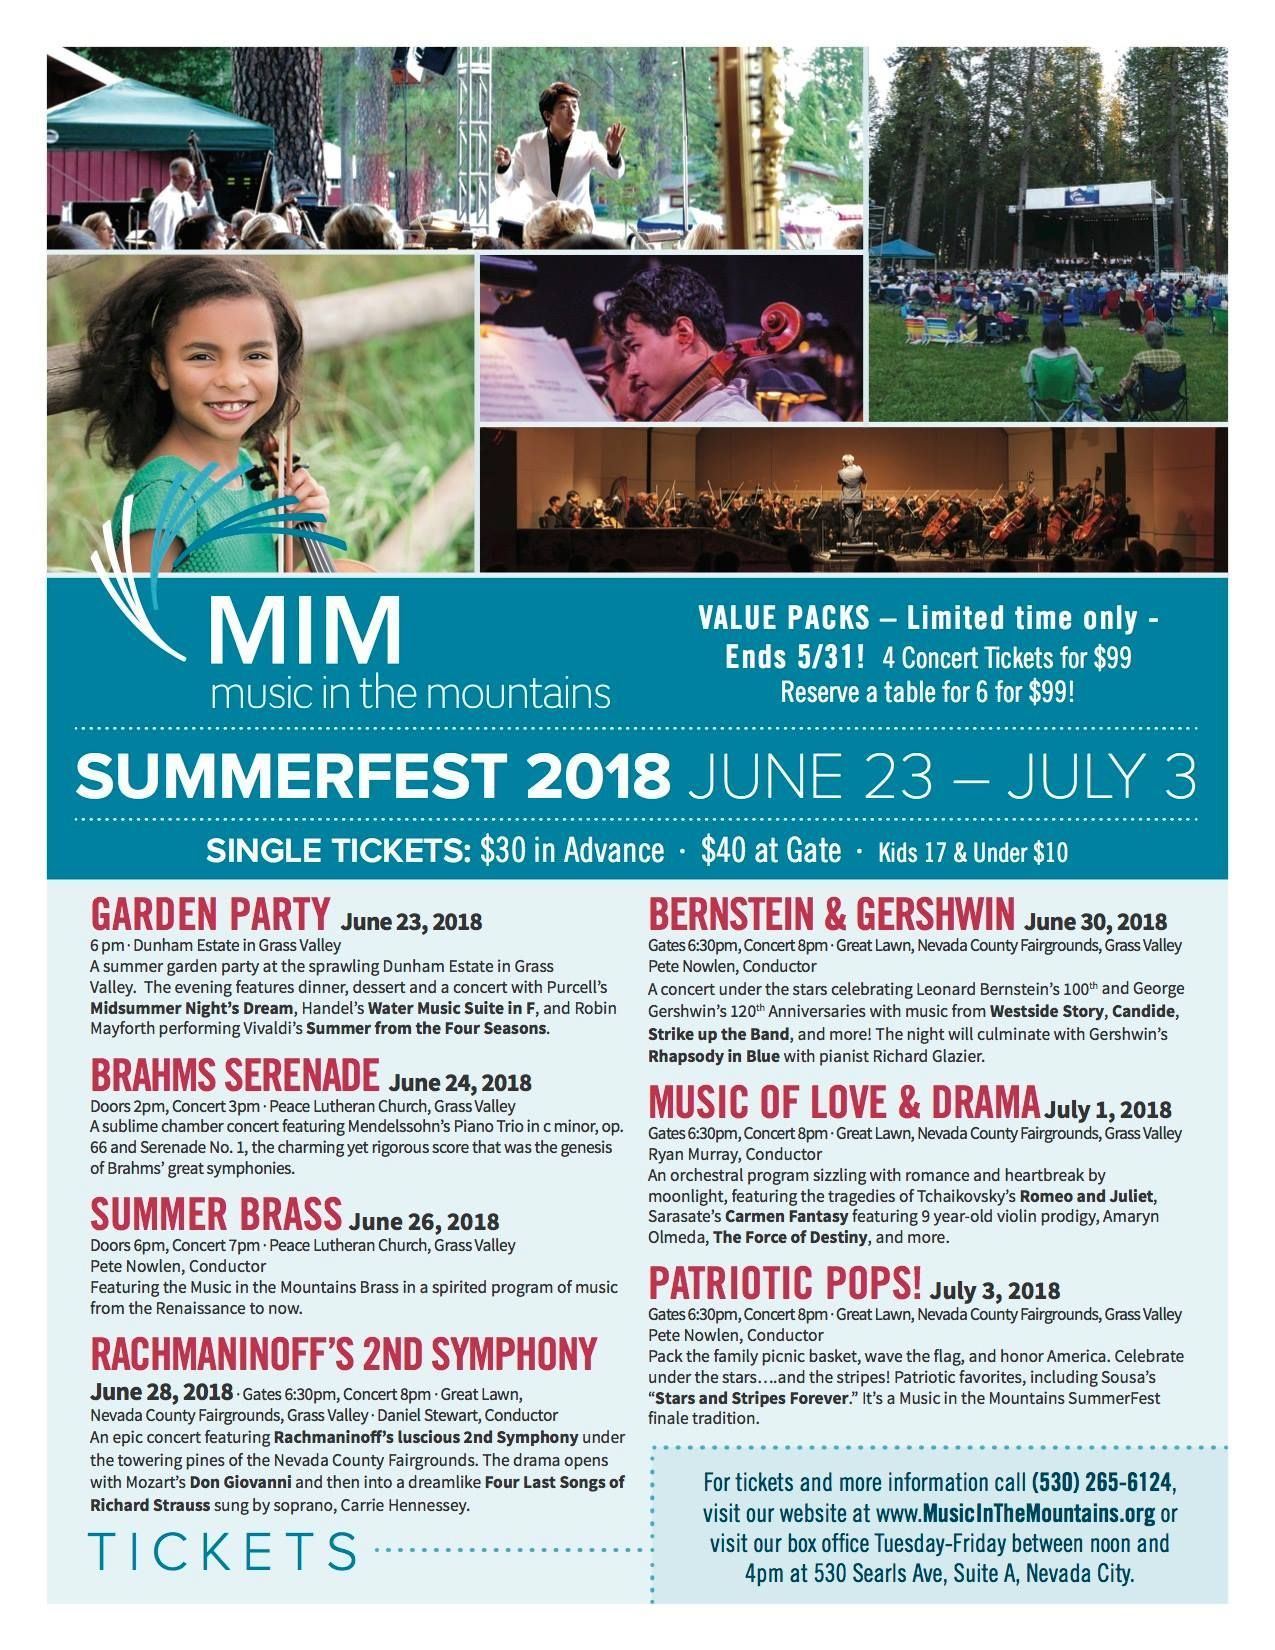 Music in the Mountains SummerFest, June 23-July 3rd, Grass Valley